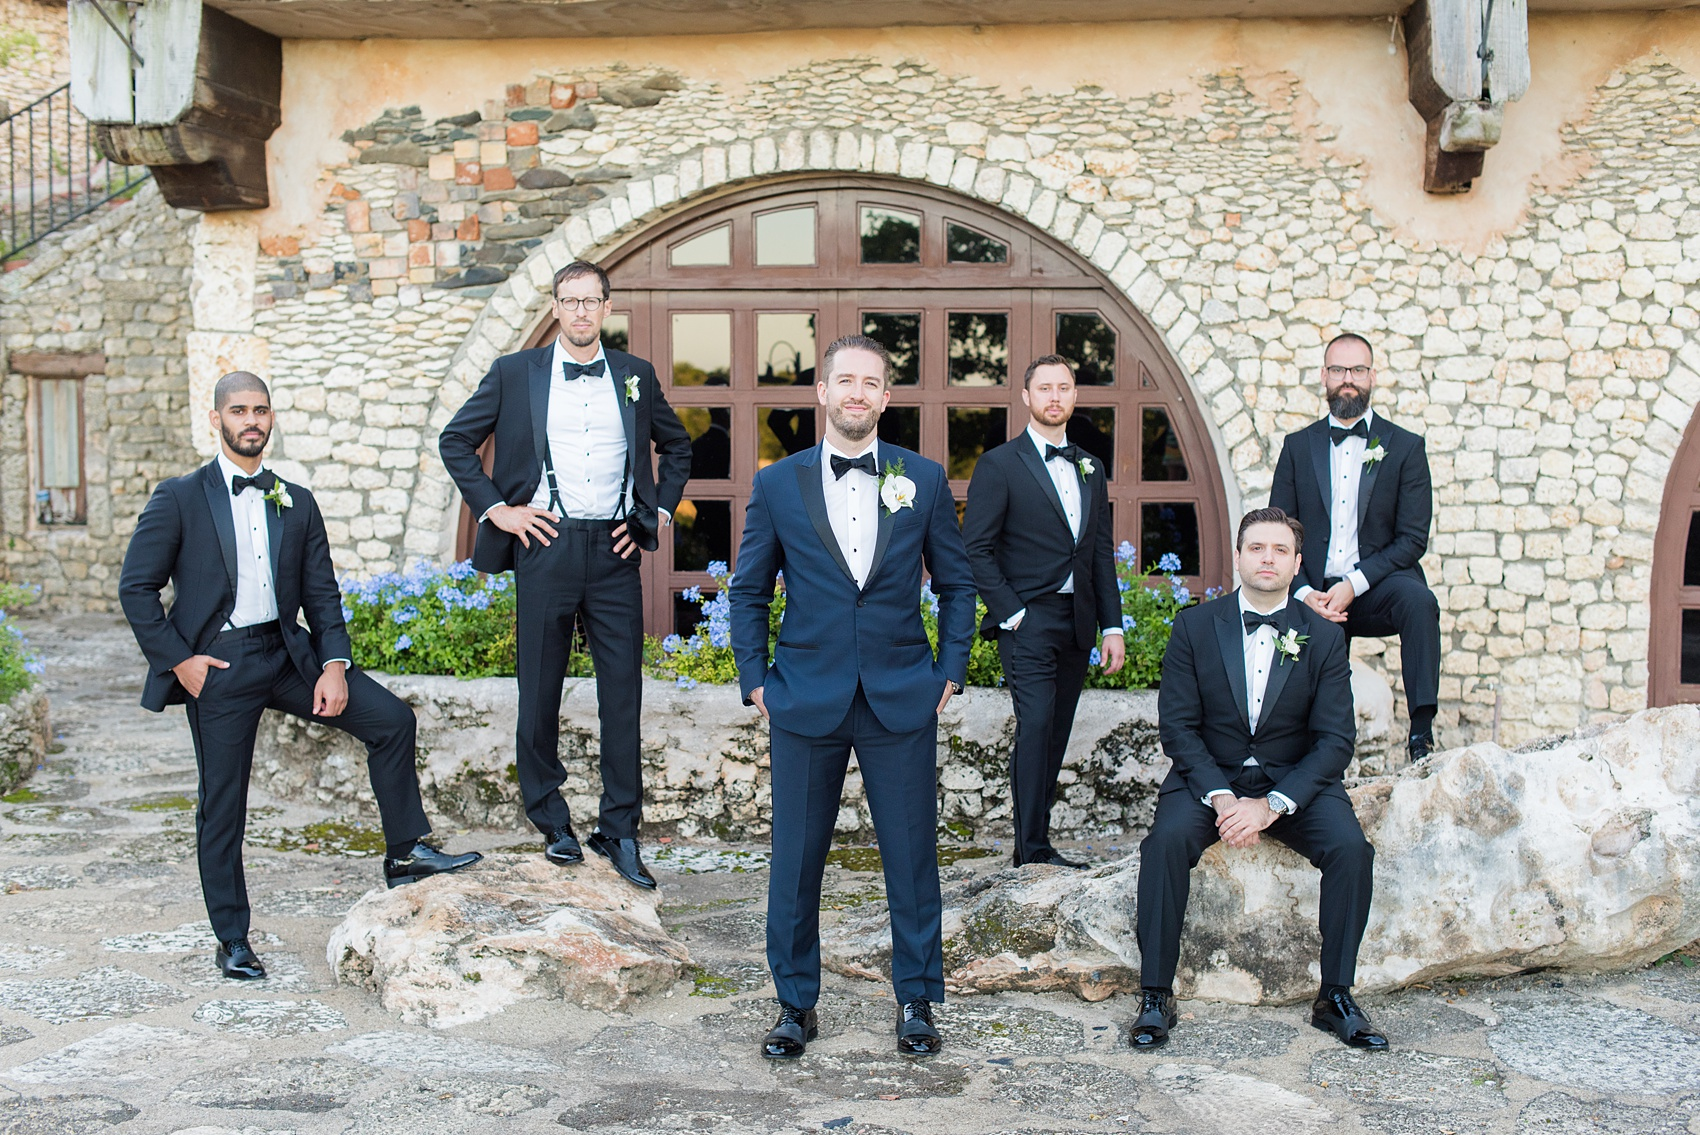 If you're planning a destination wedding Casa de Campo in the Dominican Republic is a great location. It's in La Romana, an hour from Punta Cana, and is an all inclusive resort with tropical Minitas beach and mountains view. It's a beautiful venue, which these pictures by Mikkel Paige Photography prove. Click through for more bridesmaids, groomsmen and wedding party ideas! Coordination by @theeventeur, makeup by NYC Beauty Clique. #mikkelpaige #weddingparty #navybluewedding